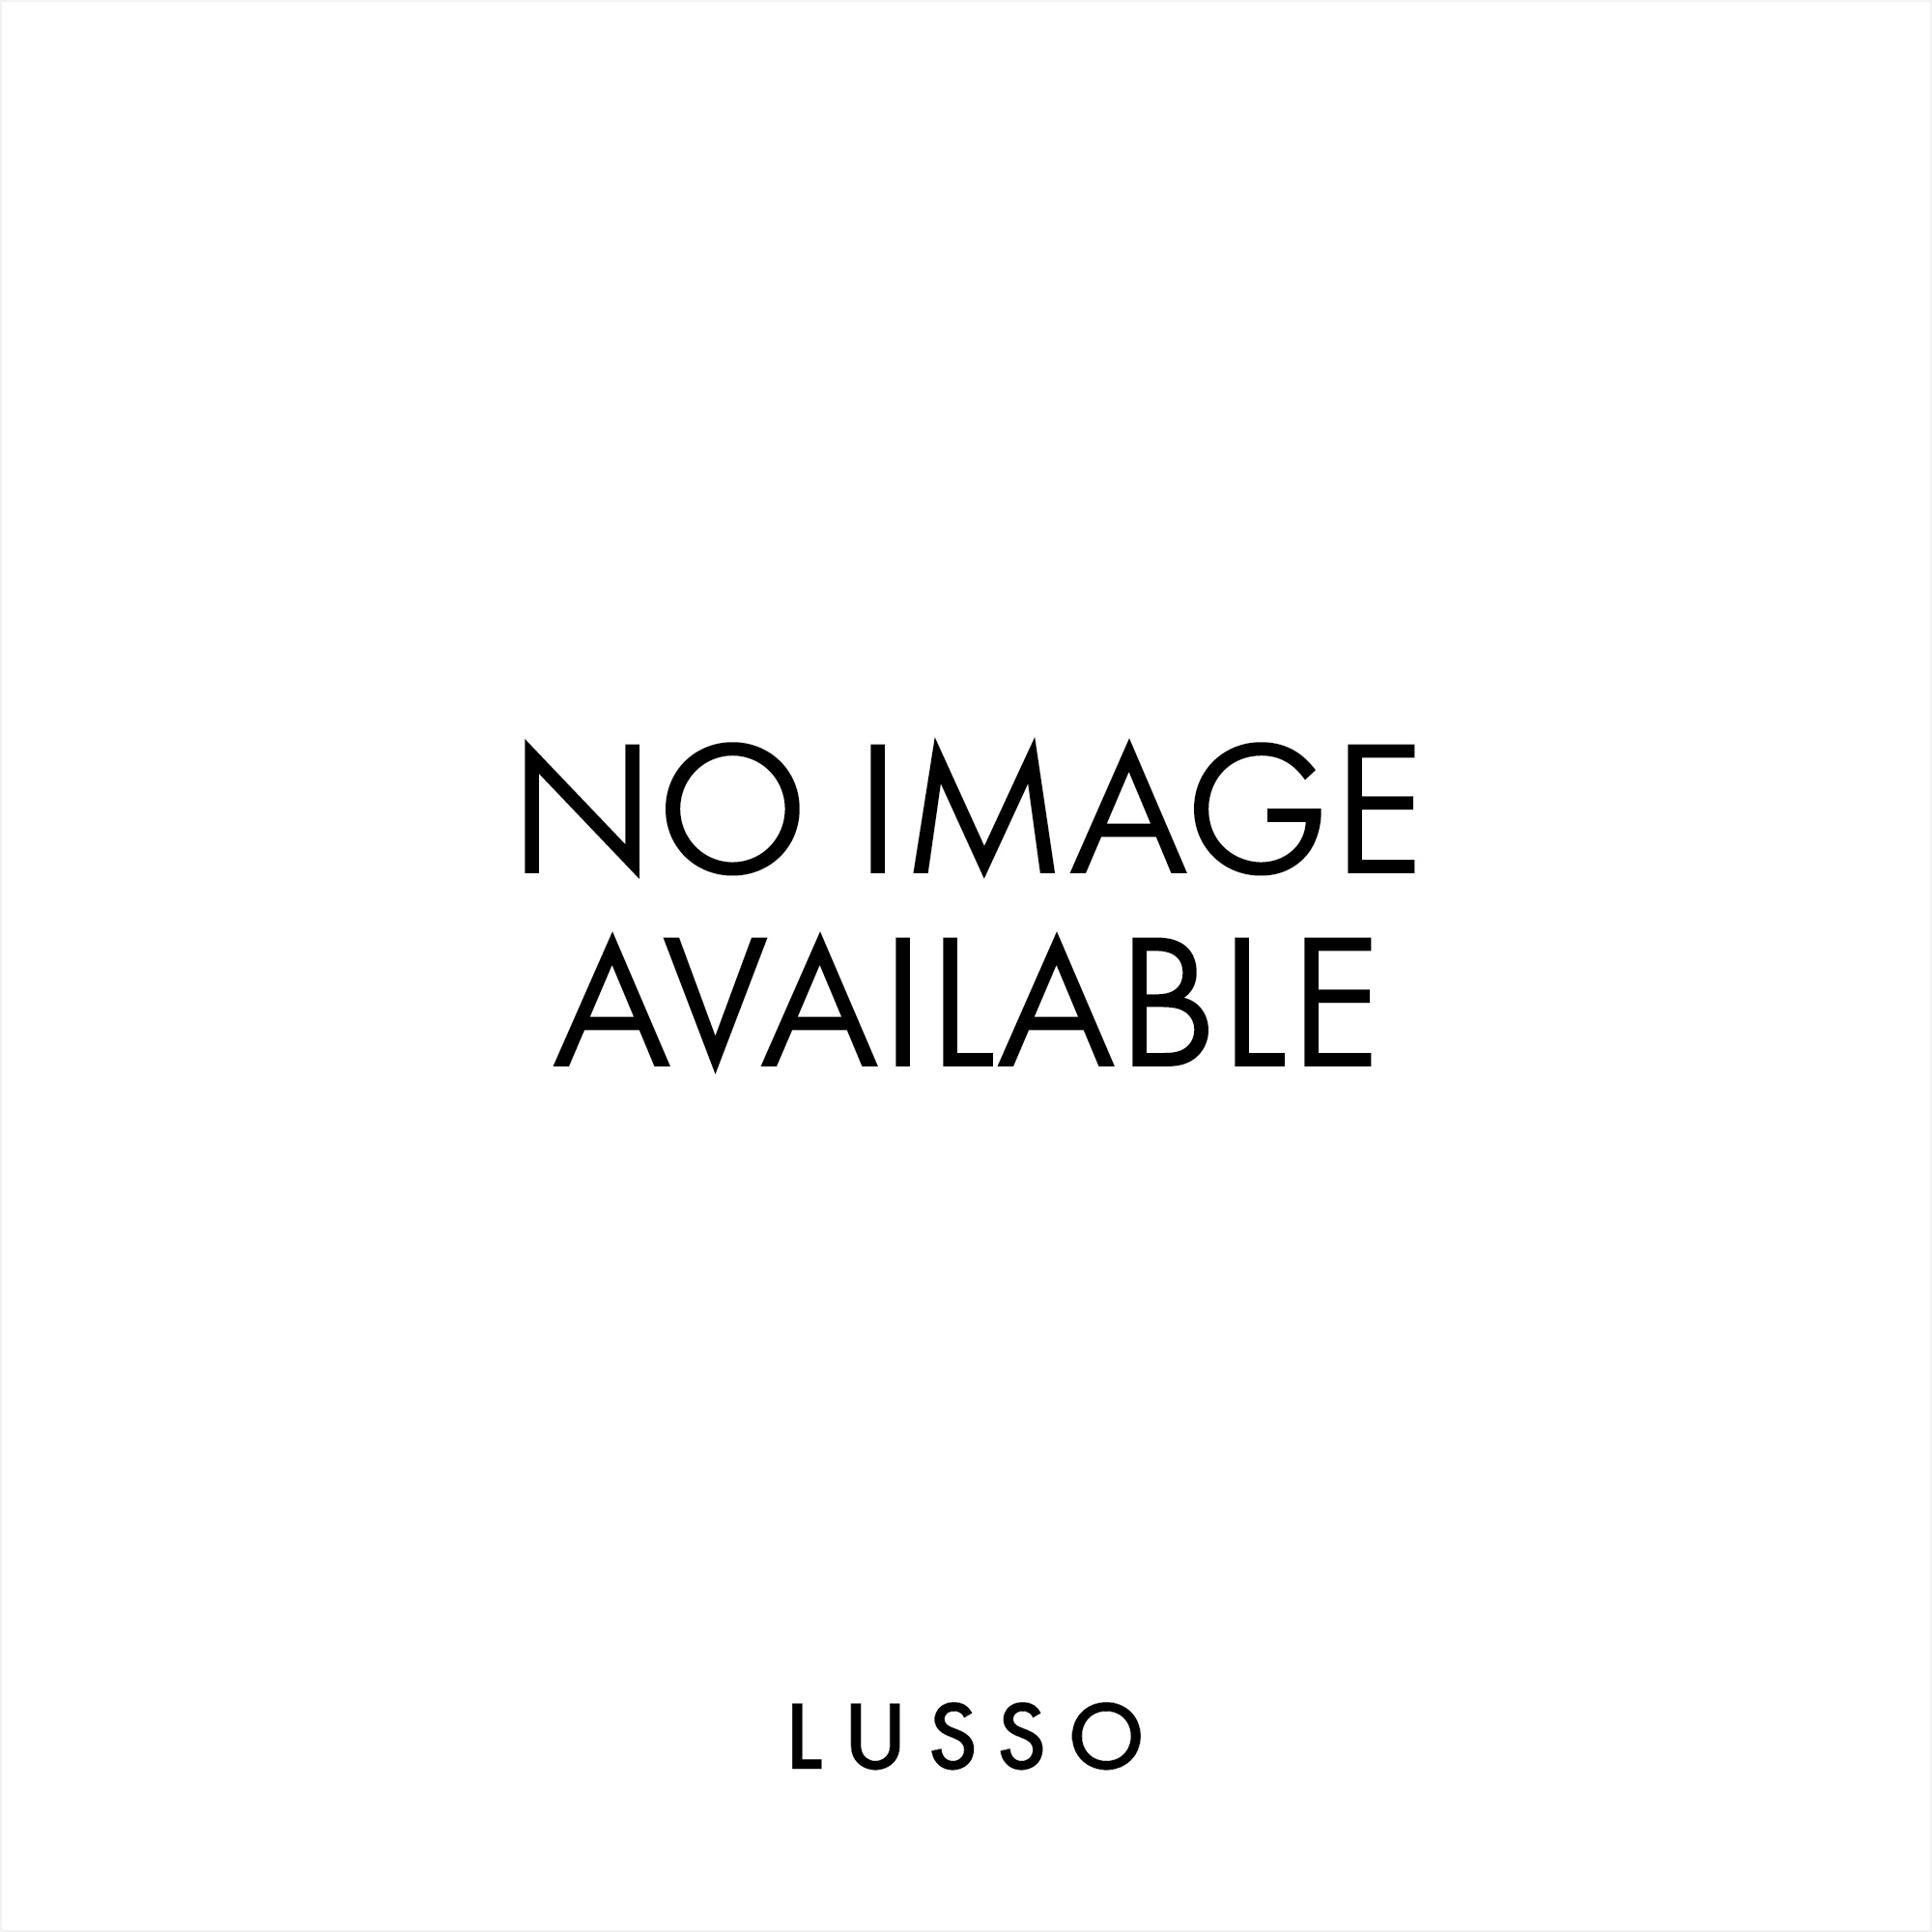 Lusso Stone Ethos Mini Stone Resin Wall Hung Basin 330